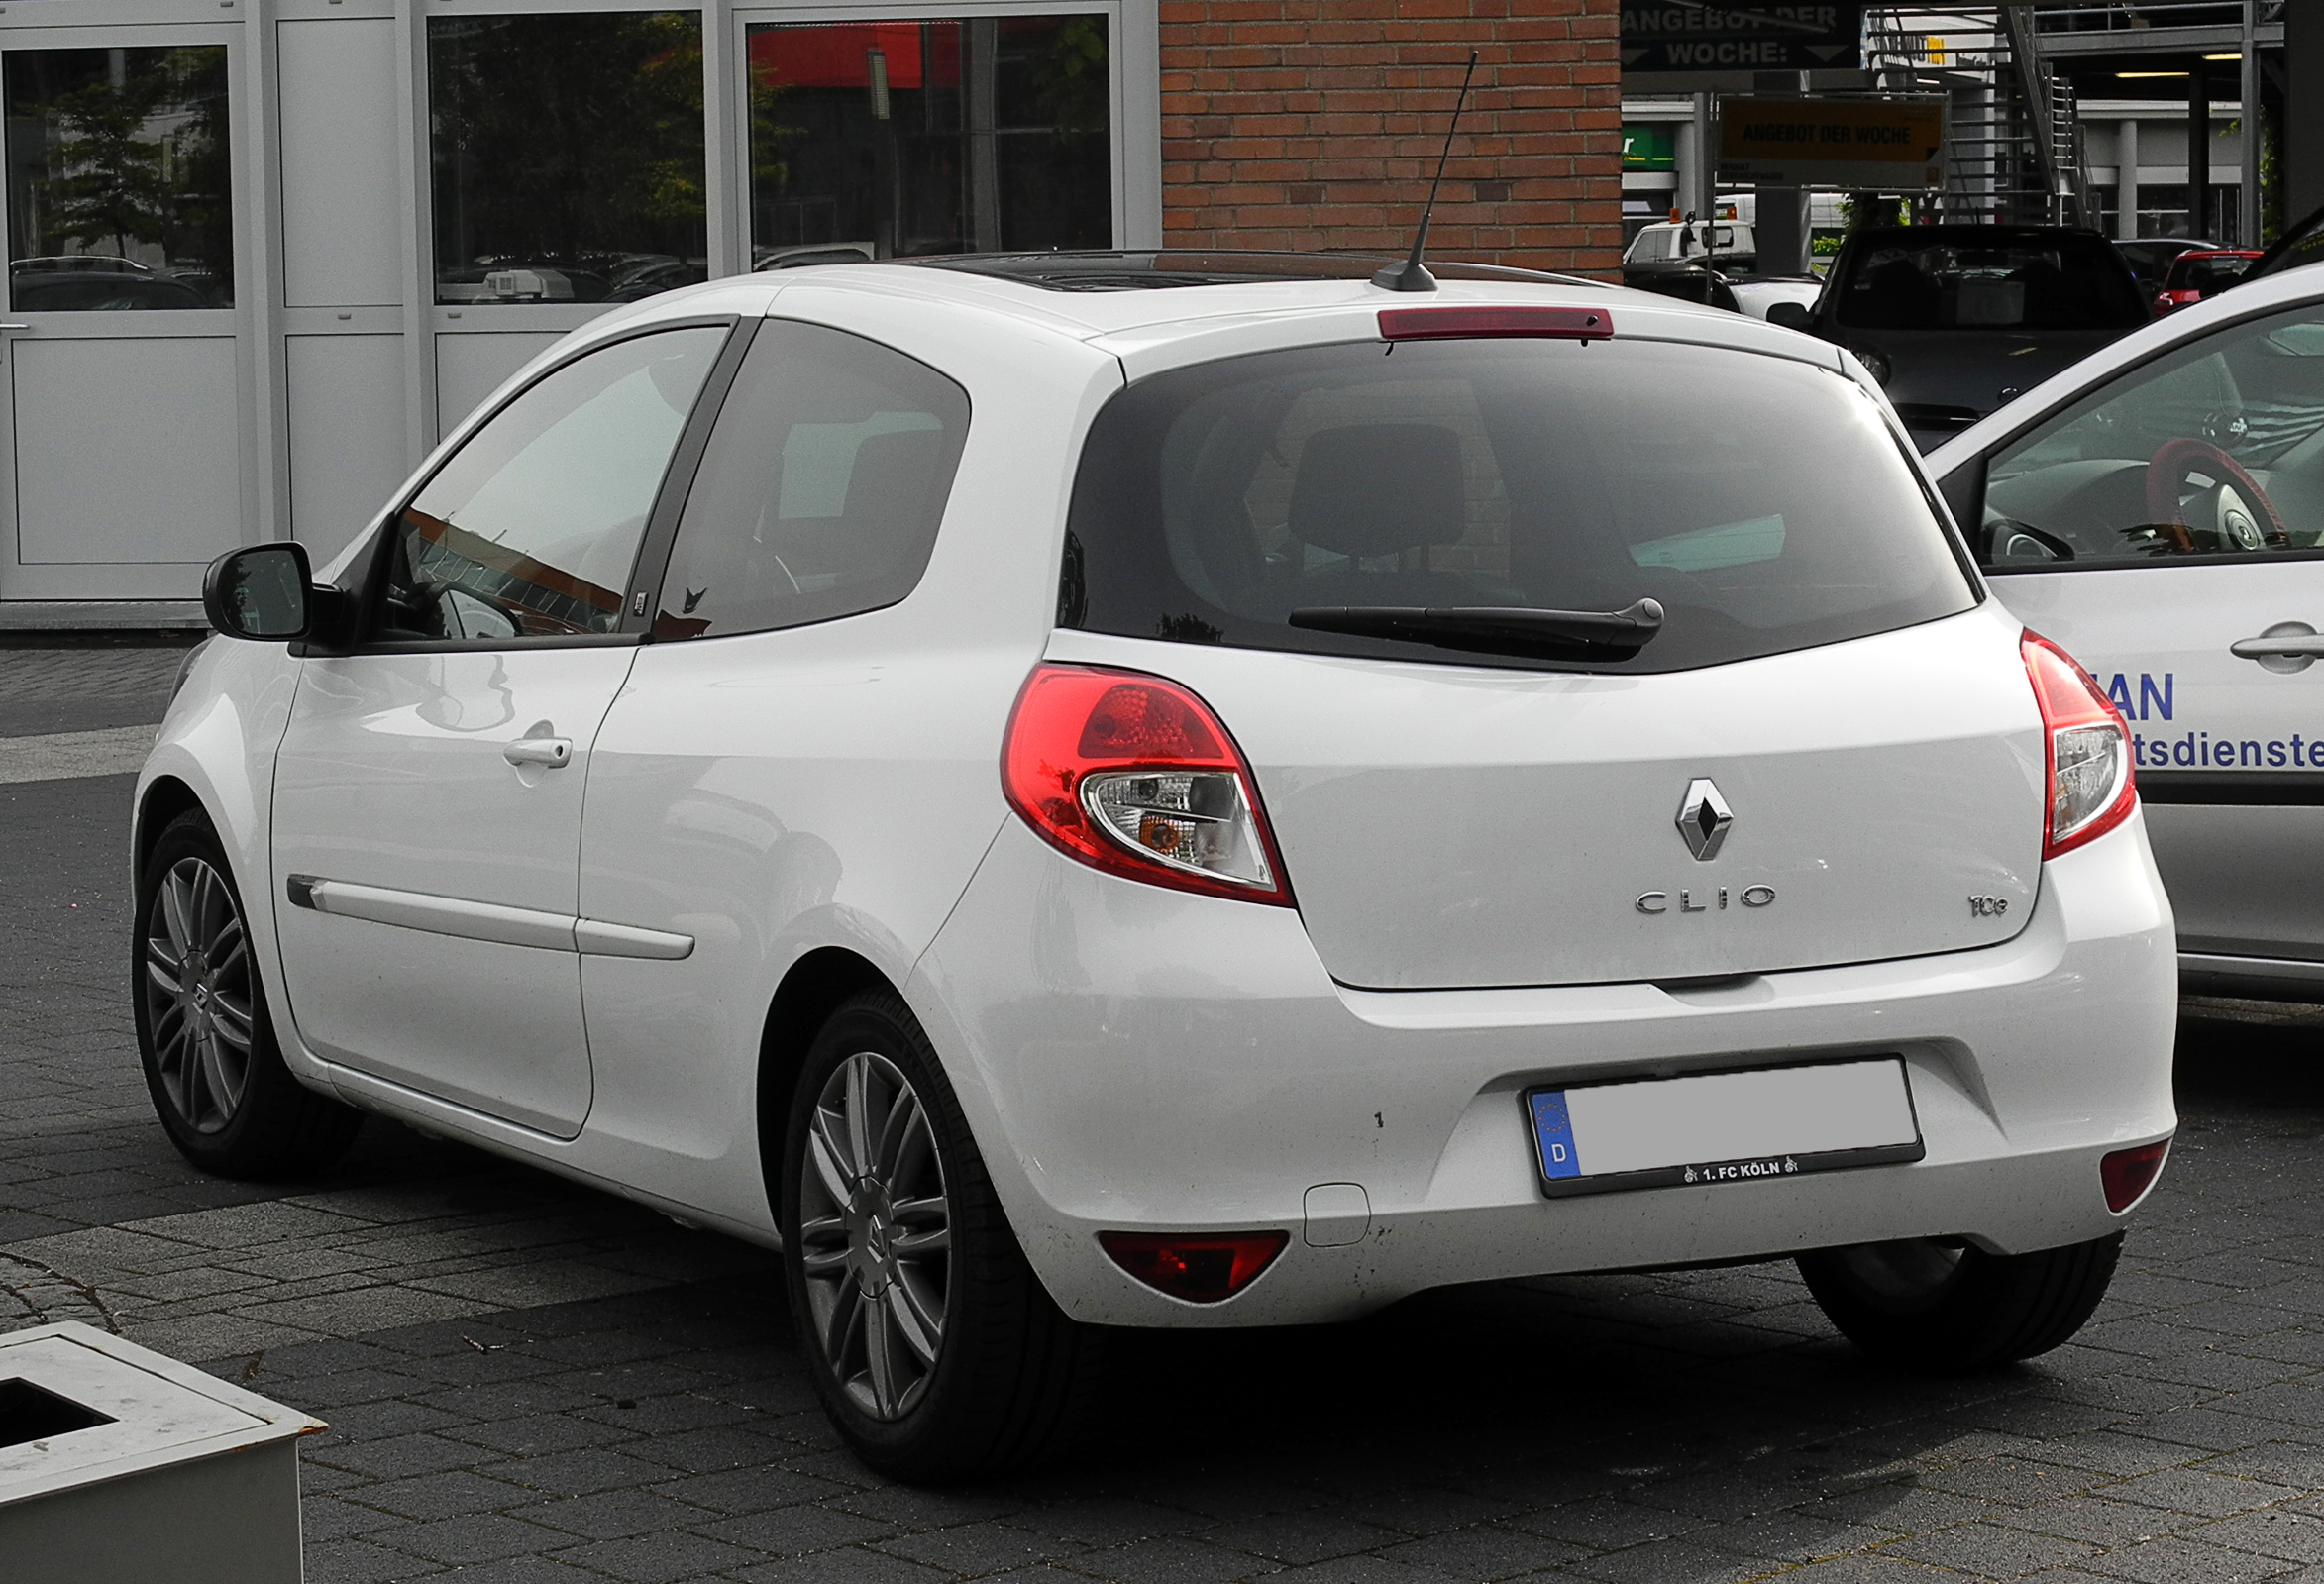 file renault clio 20th iii facelift heckansicht 12 juni 2011 d wikimedia. Black Bedroom Furniture Sets. Home Design Ideas